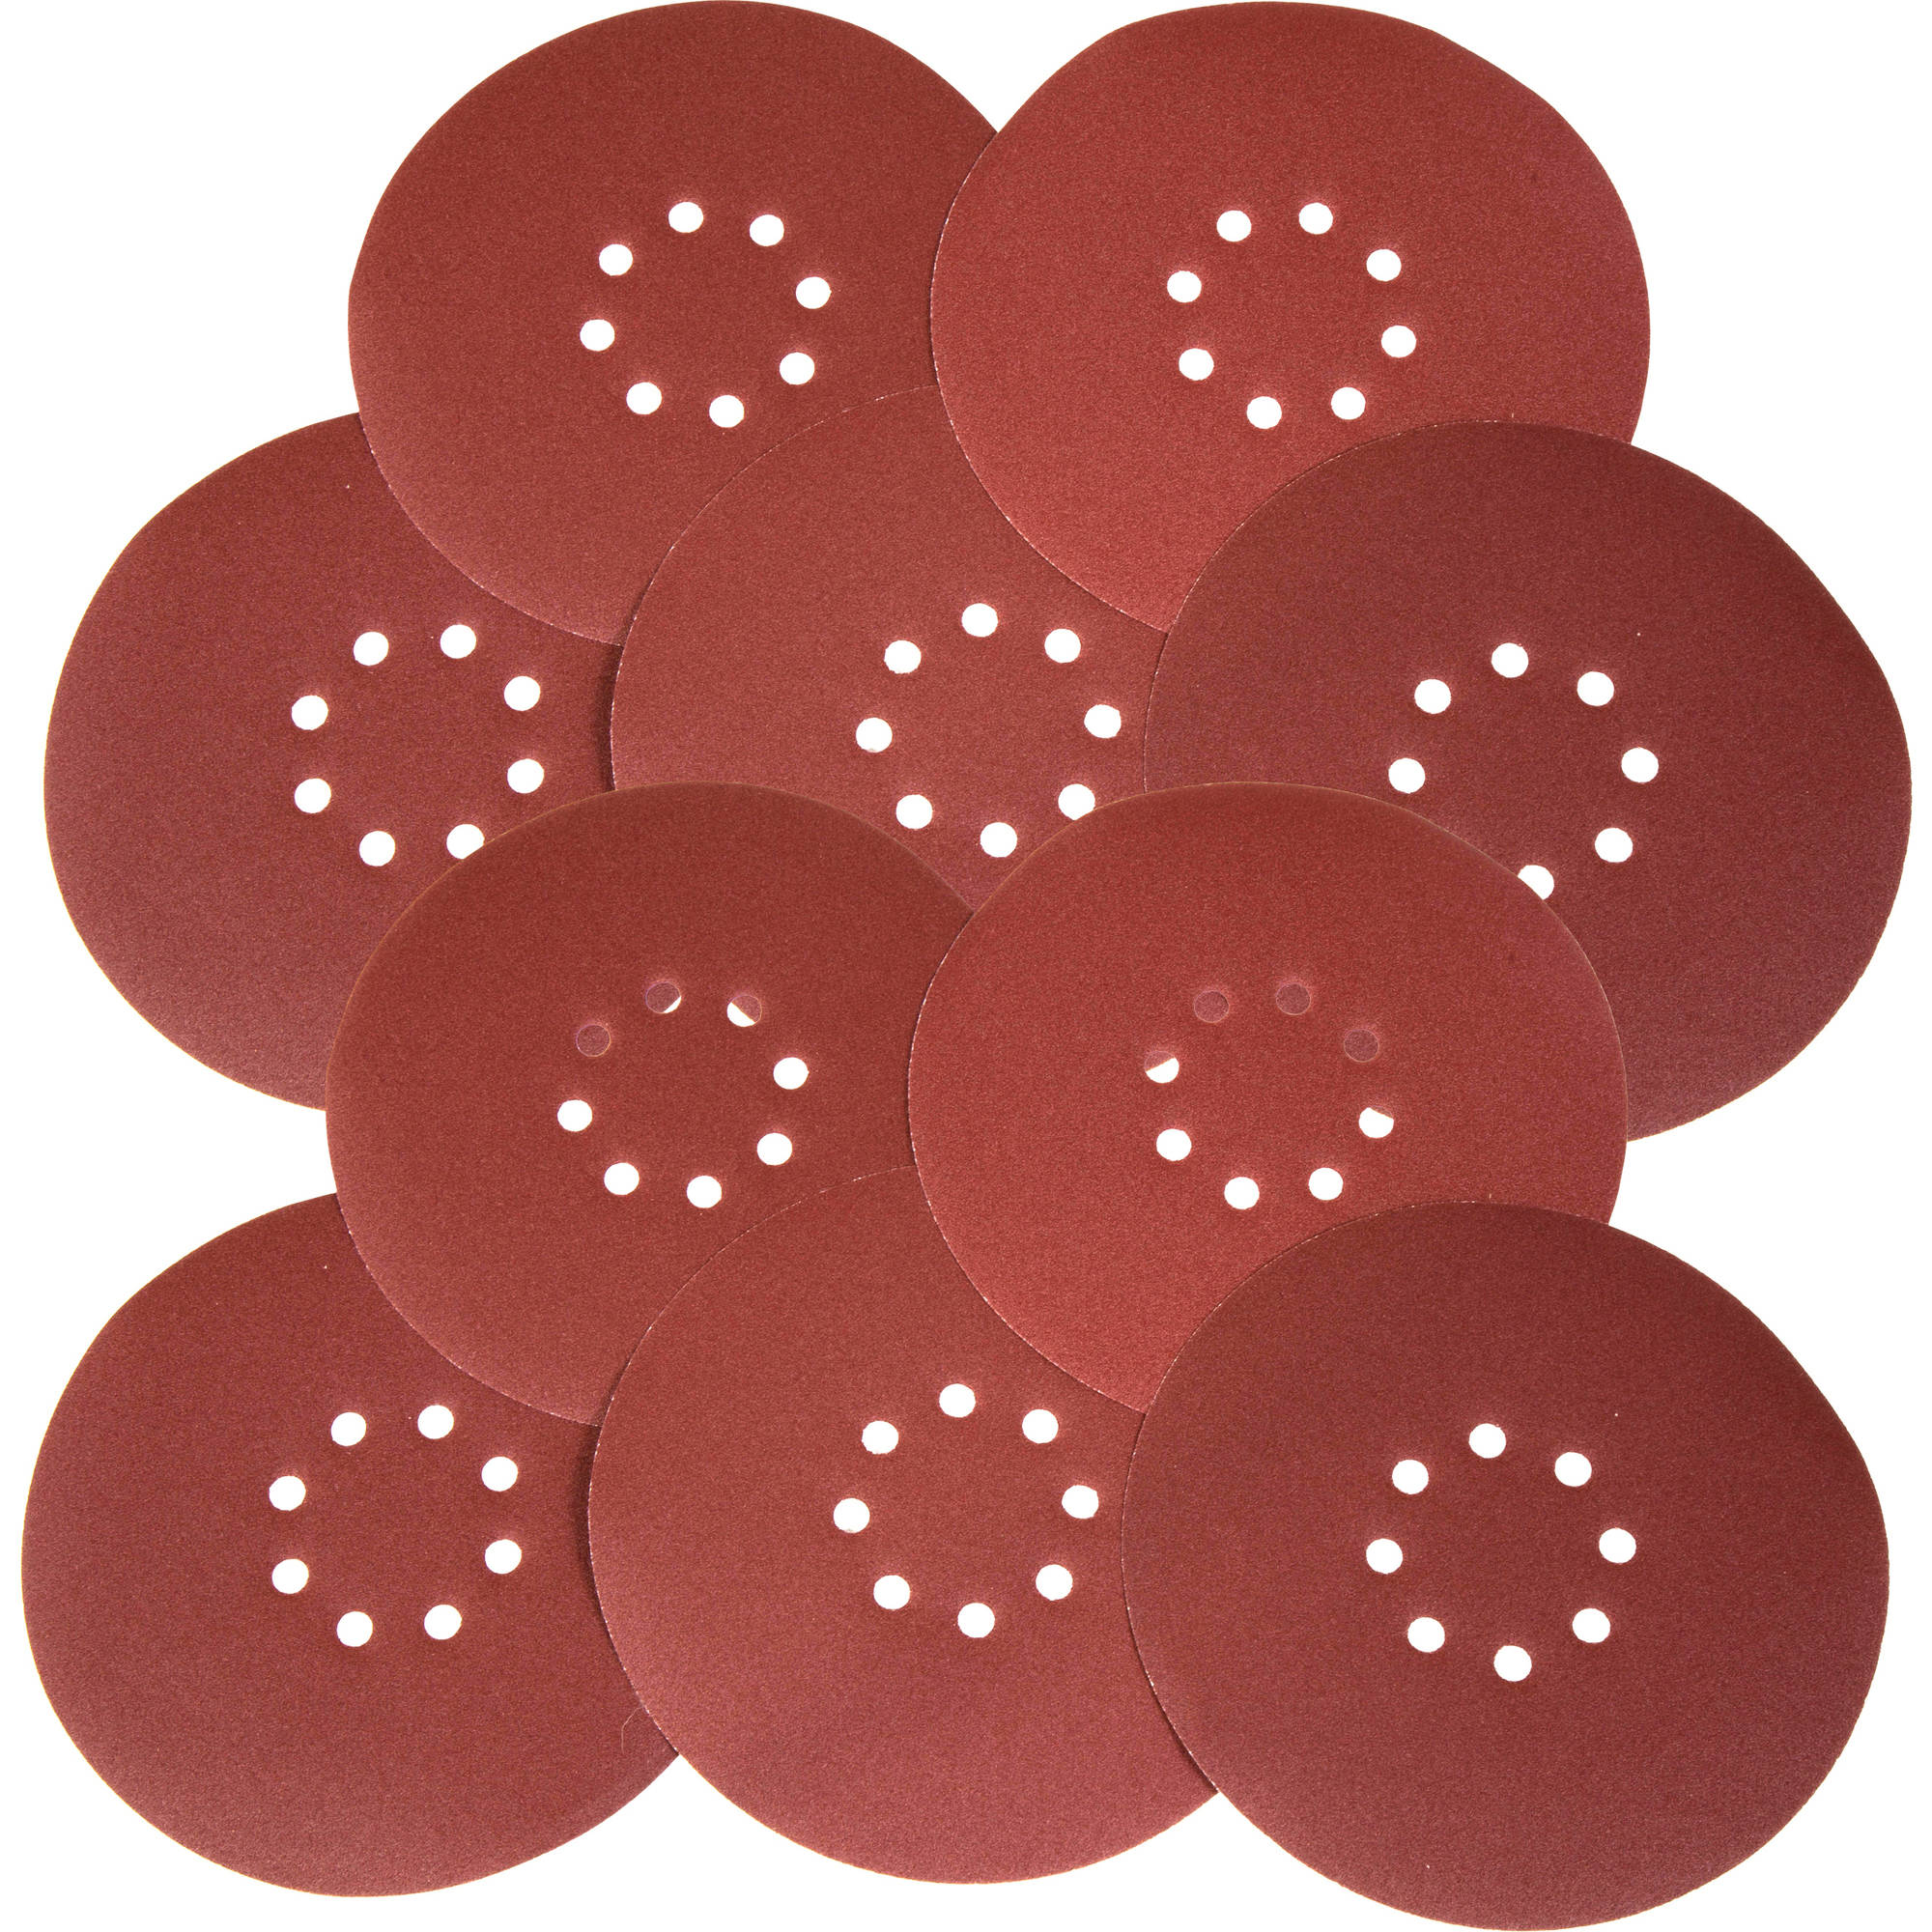 "WEN Drywall Sander 120-Grit Hook and Loop 9"" Sandpaper, 10-Pack"